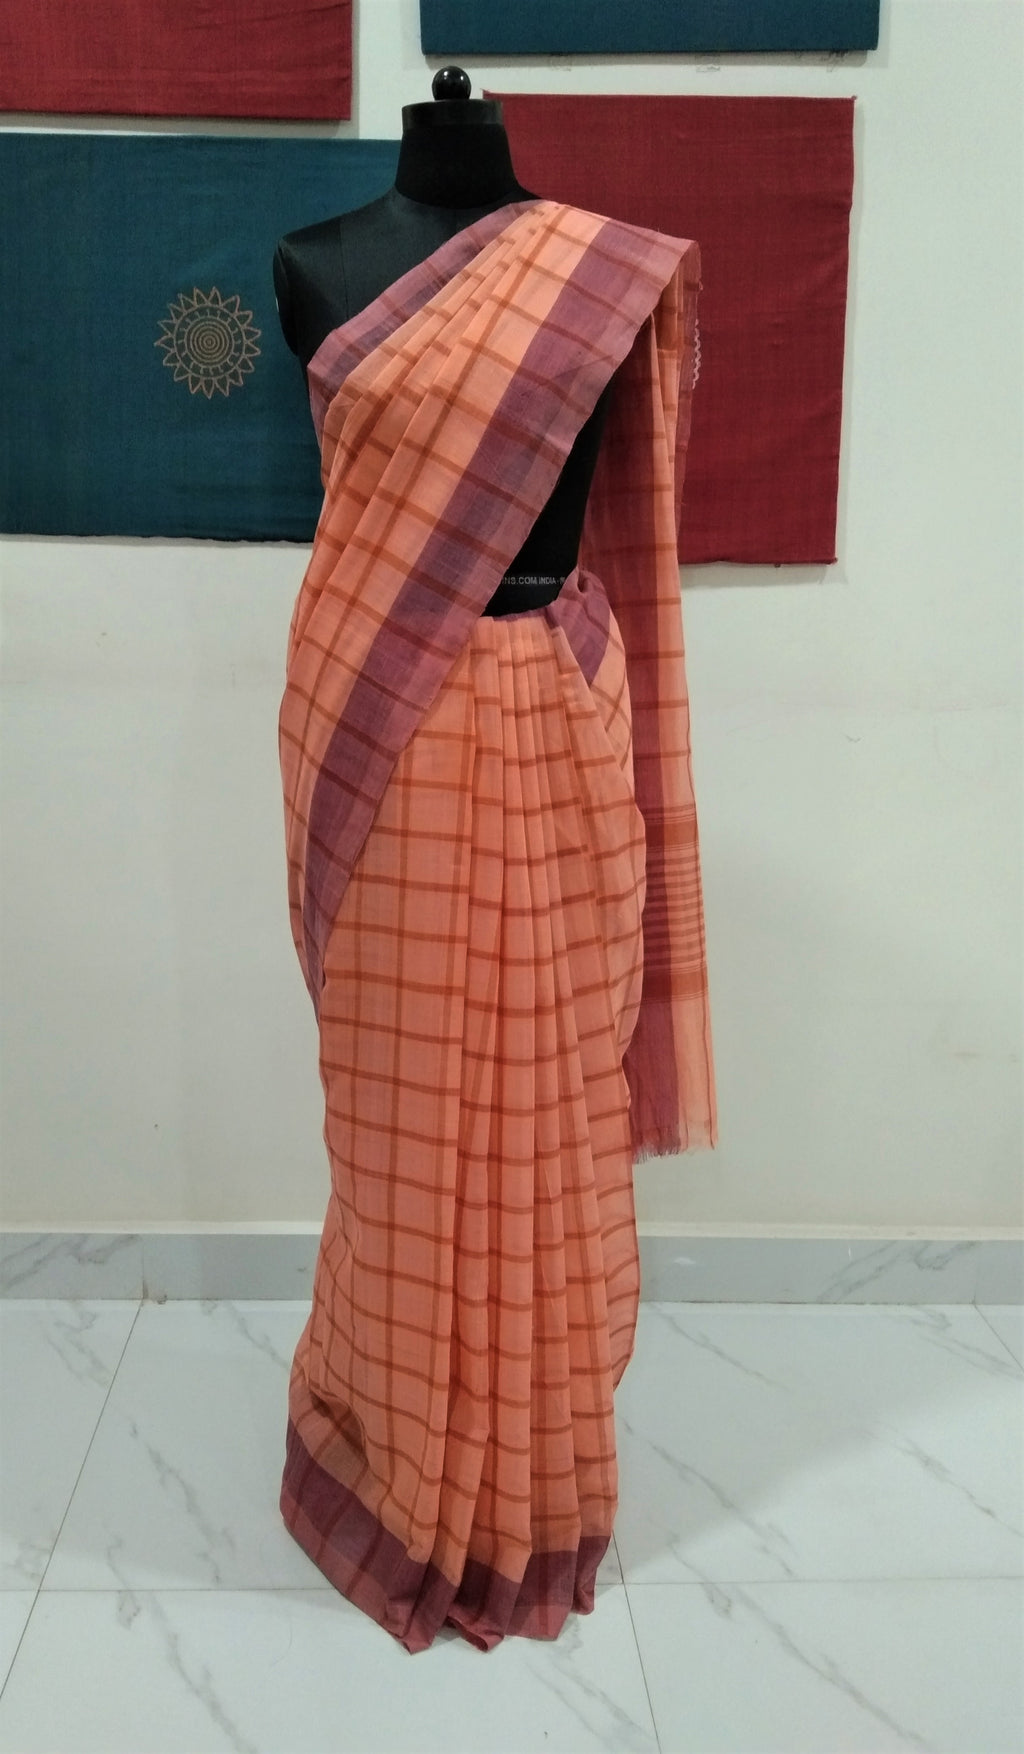 Bobbili Cotton Saree in Checks - Peach & Brown